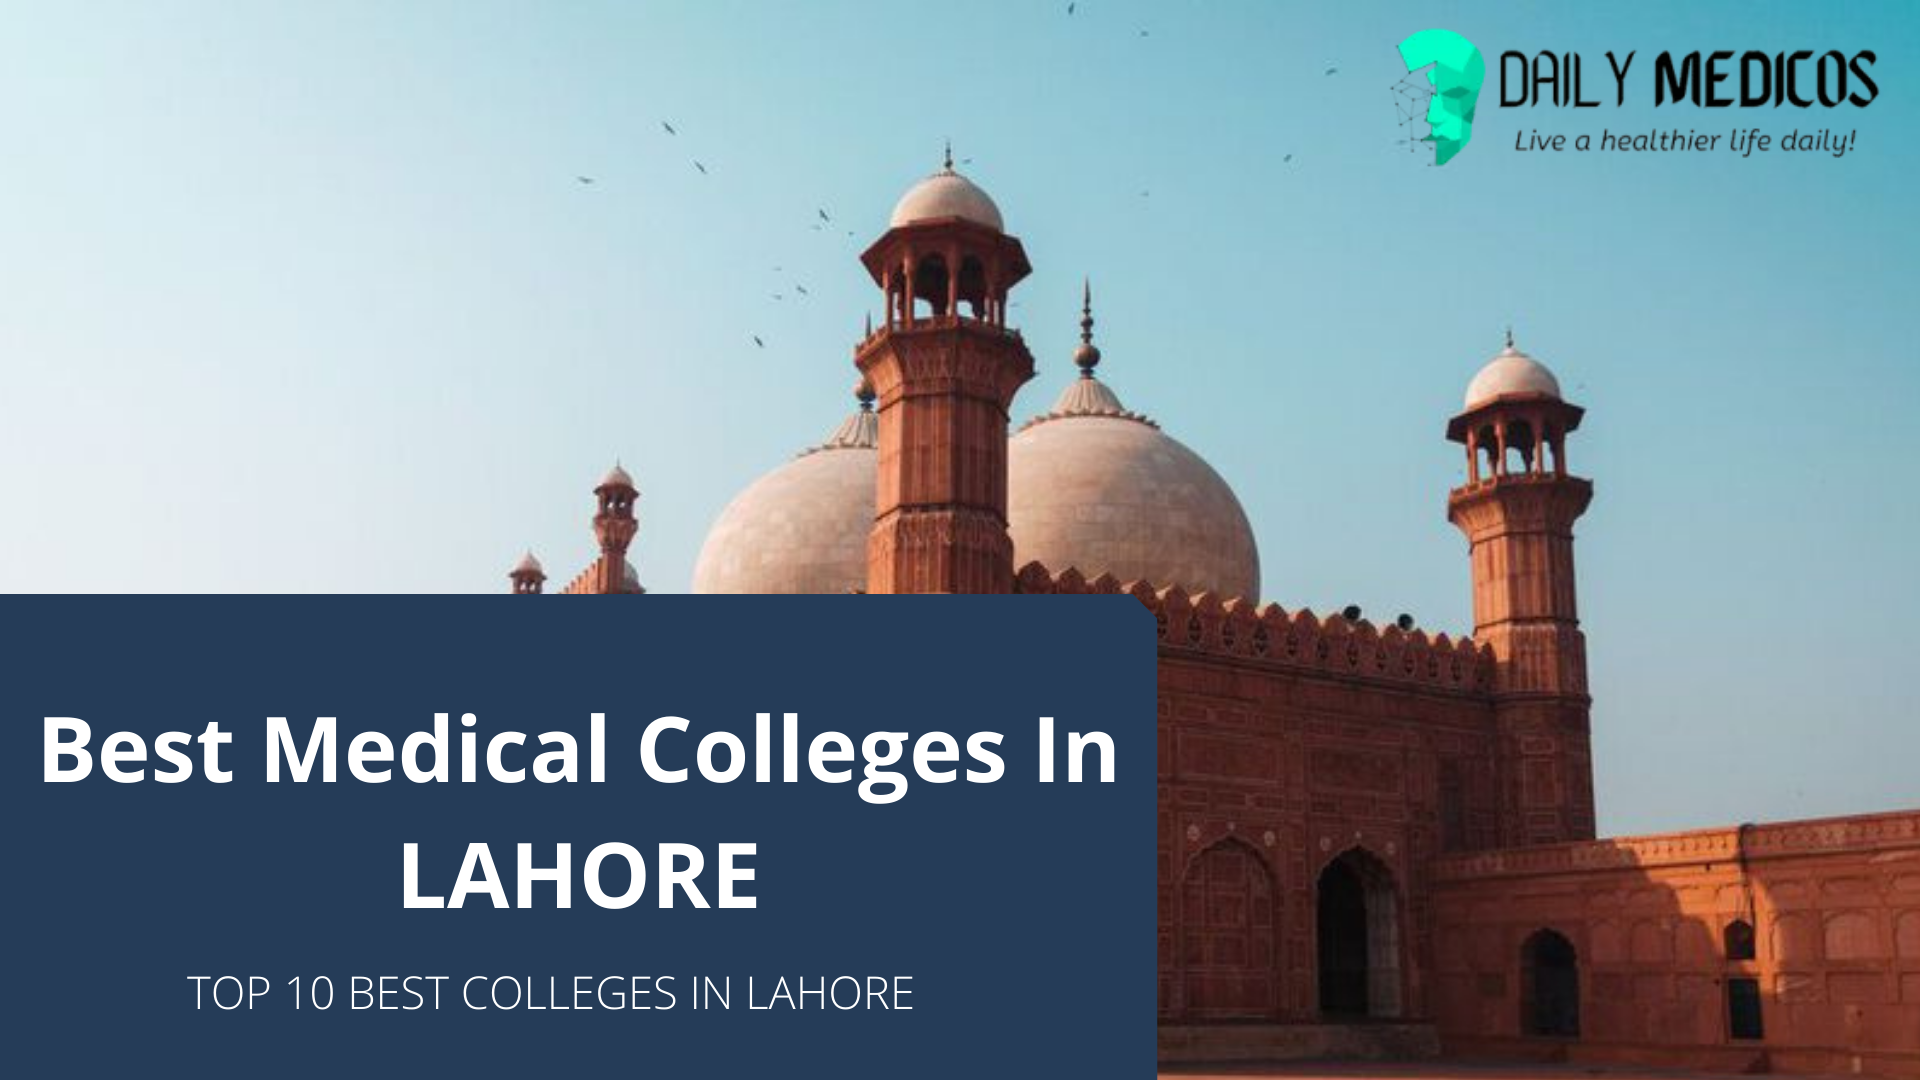 The Top 10 Best Medical Colleges In Lahore [Detailed Guide] 1 - Daily Medicos